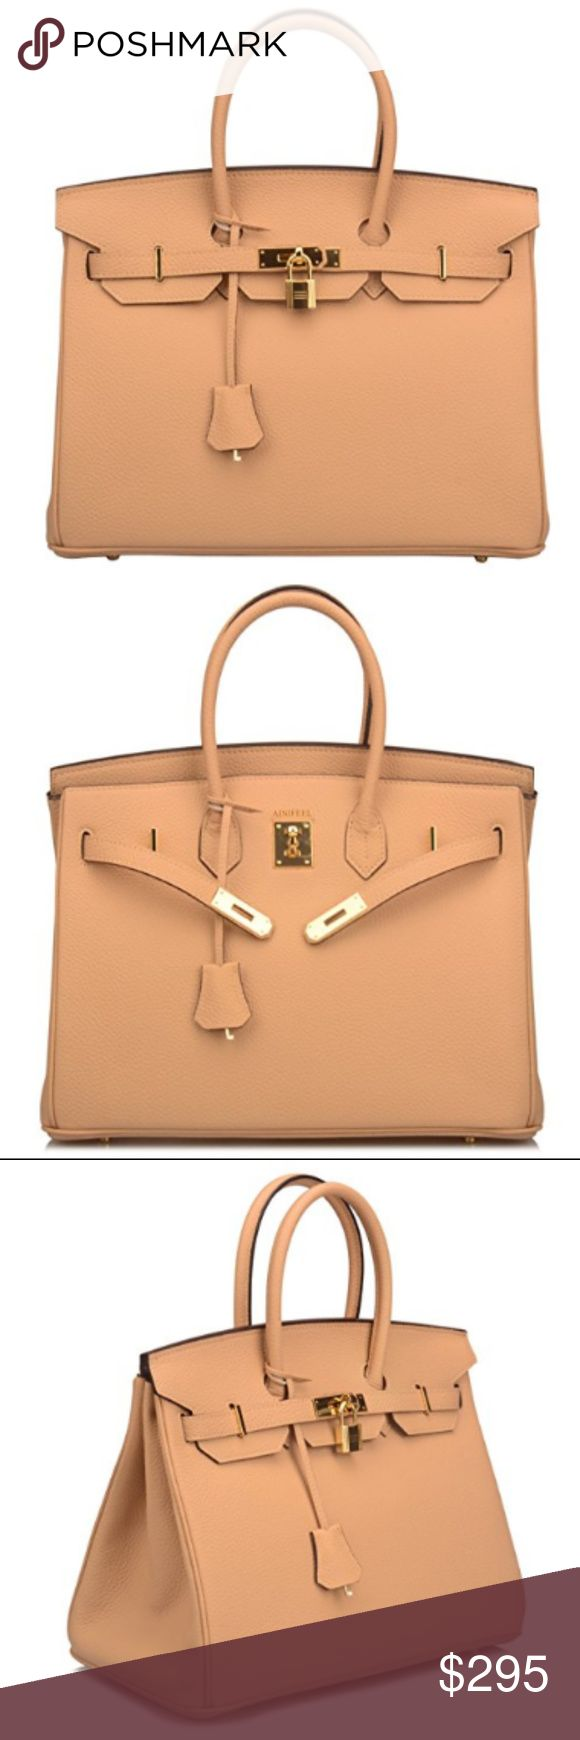 NEW Padlock Satchel Leather Handbags - Apricot PLEASE CONTACT ME UPON PURCHASE FOR SIZE AVAILABILITY! 30cm or 35cm      Cow leather     Synthetic lining. Imported.     Size 30cm: 11.8'' long, 5.5'' wide, 9'' high, 3.5'' handle     Size 35cm: 13.8'' long, 7'' wide, 10'' high, 4'' handle      We made this item with the full-grain cow leather, good quality and very durable.  SHIPPING: Please allow 2-3 Business days exclude holidays and weekend. Thanks for shopping @ my Closet. Bags Satchels